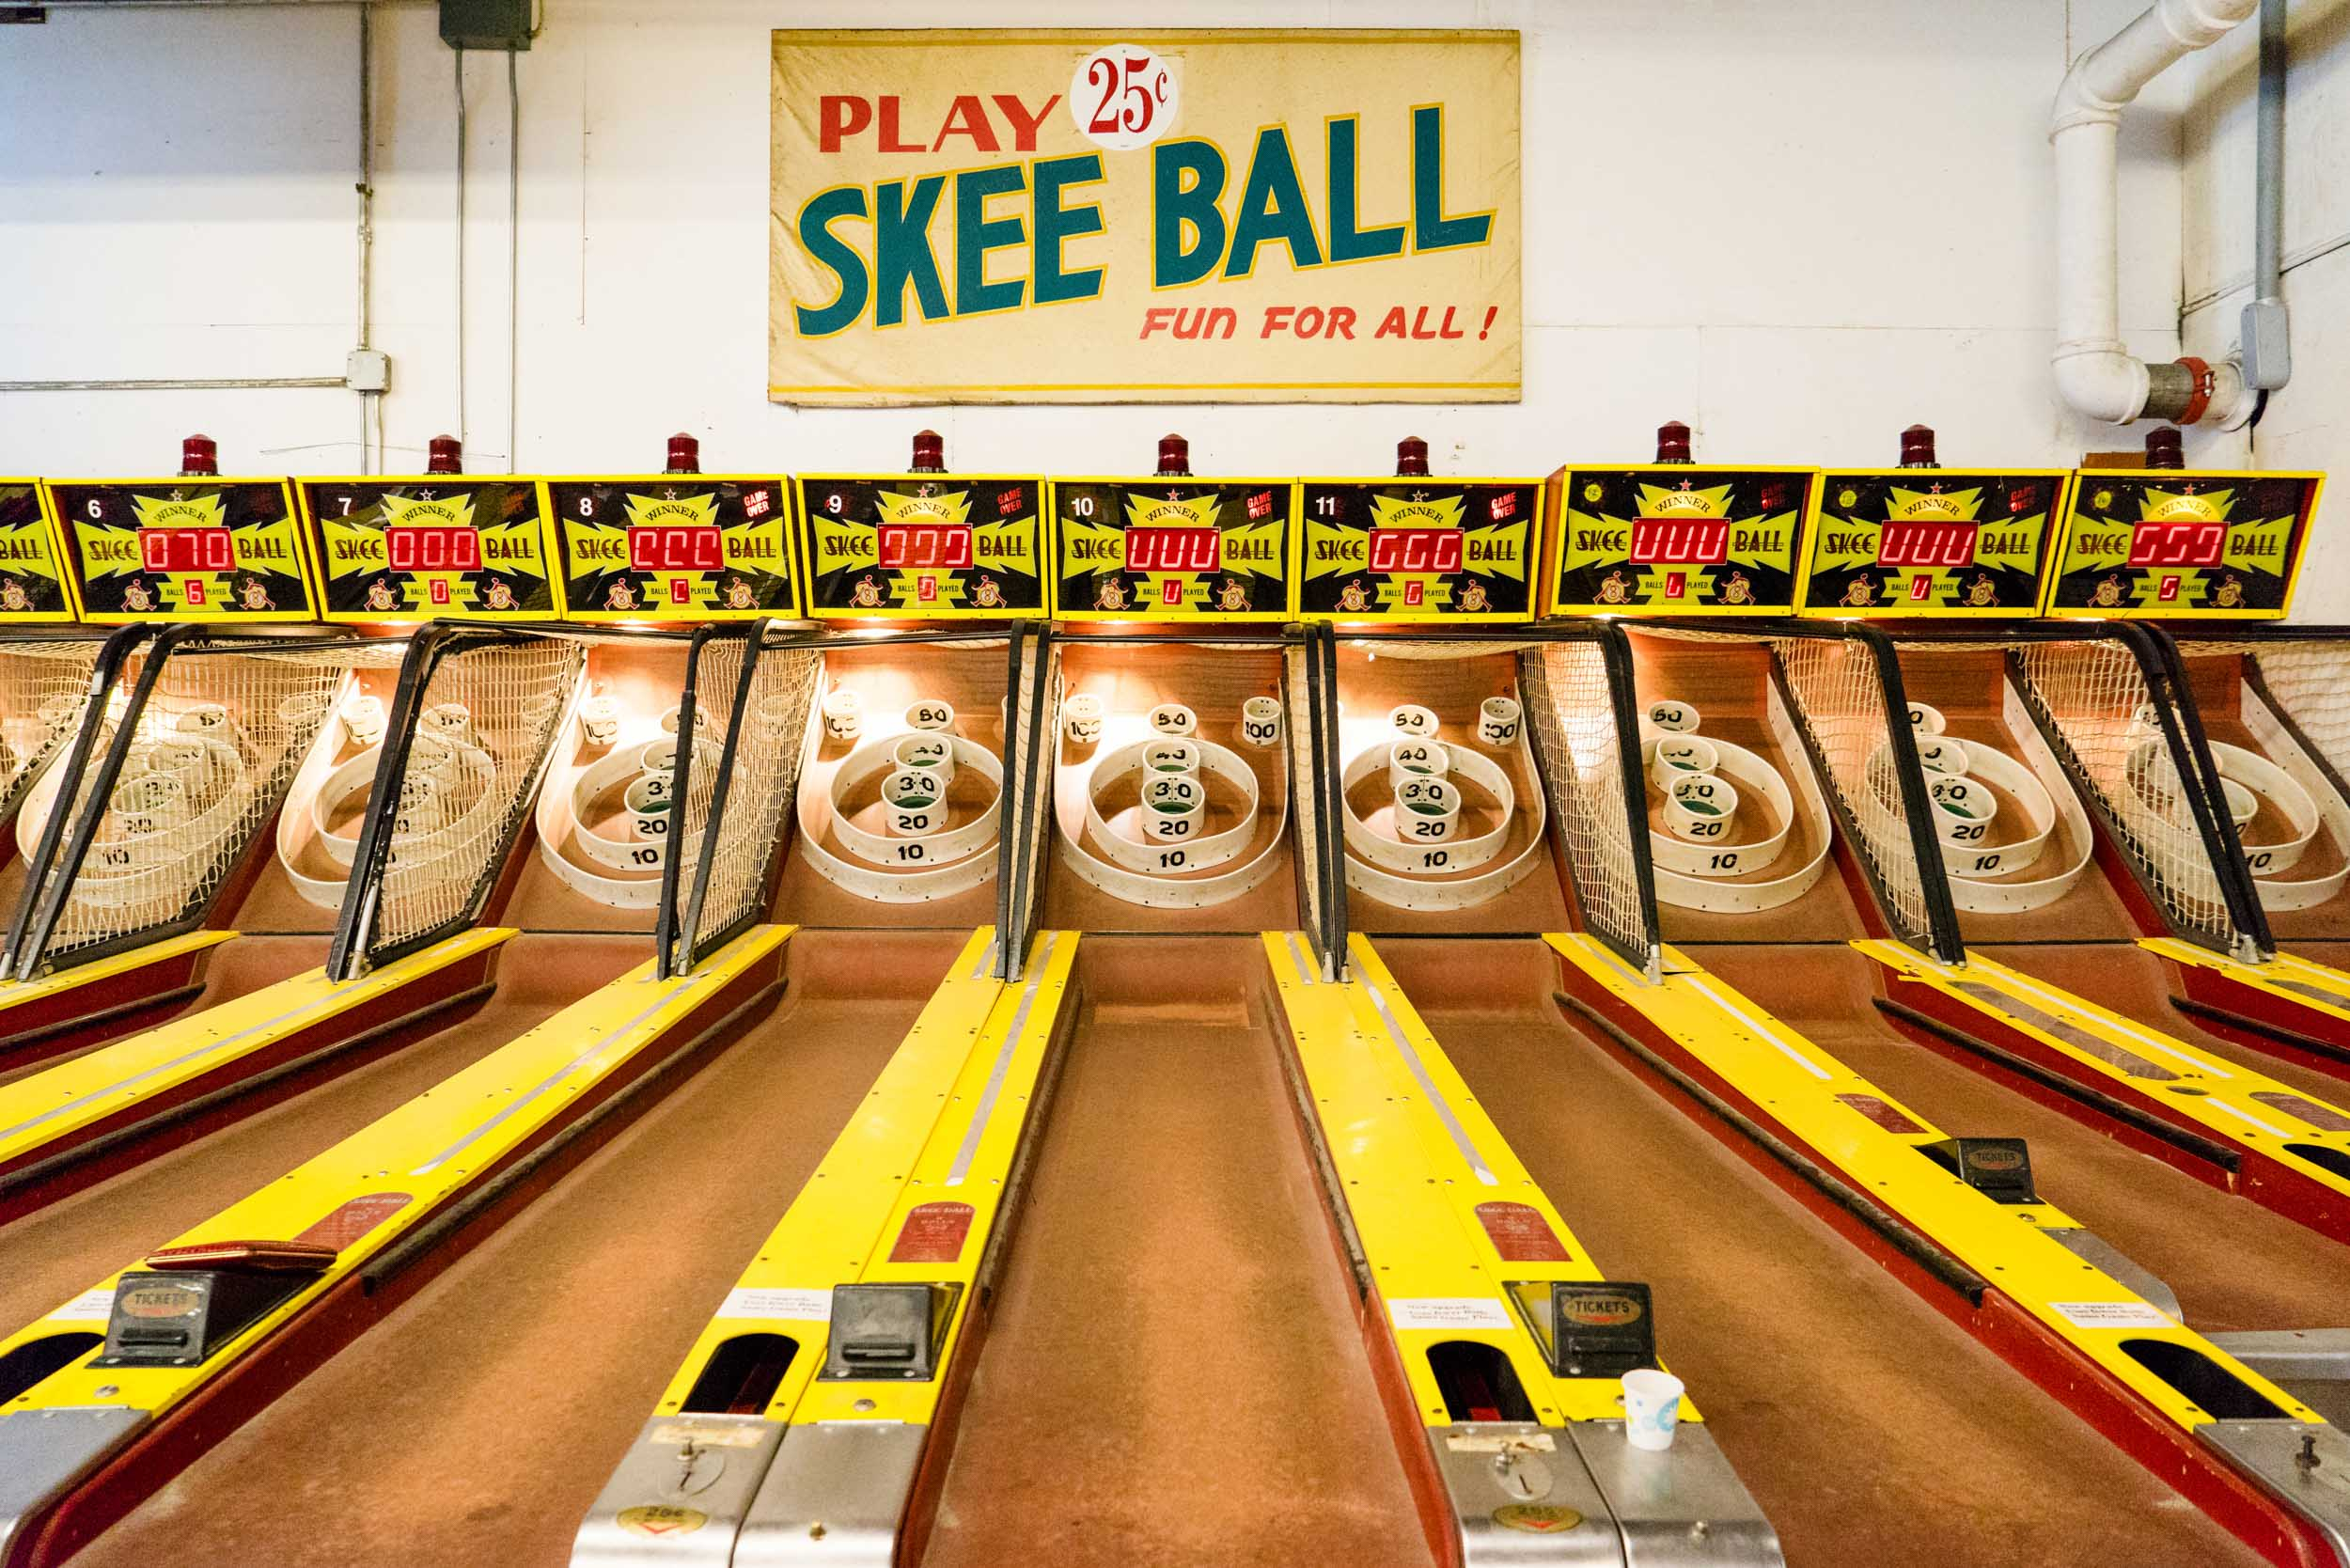 Skee Ball - Fun For All!